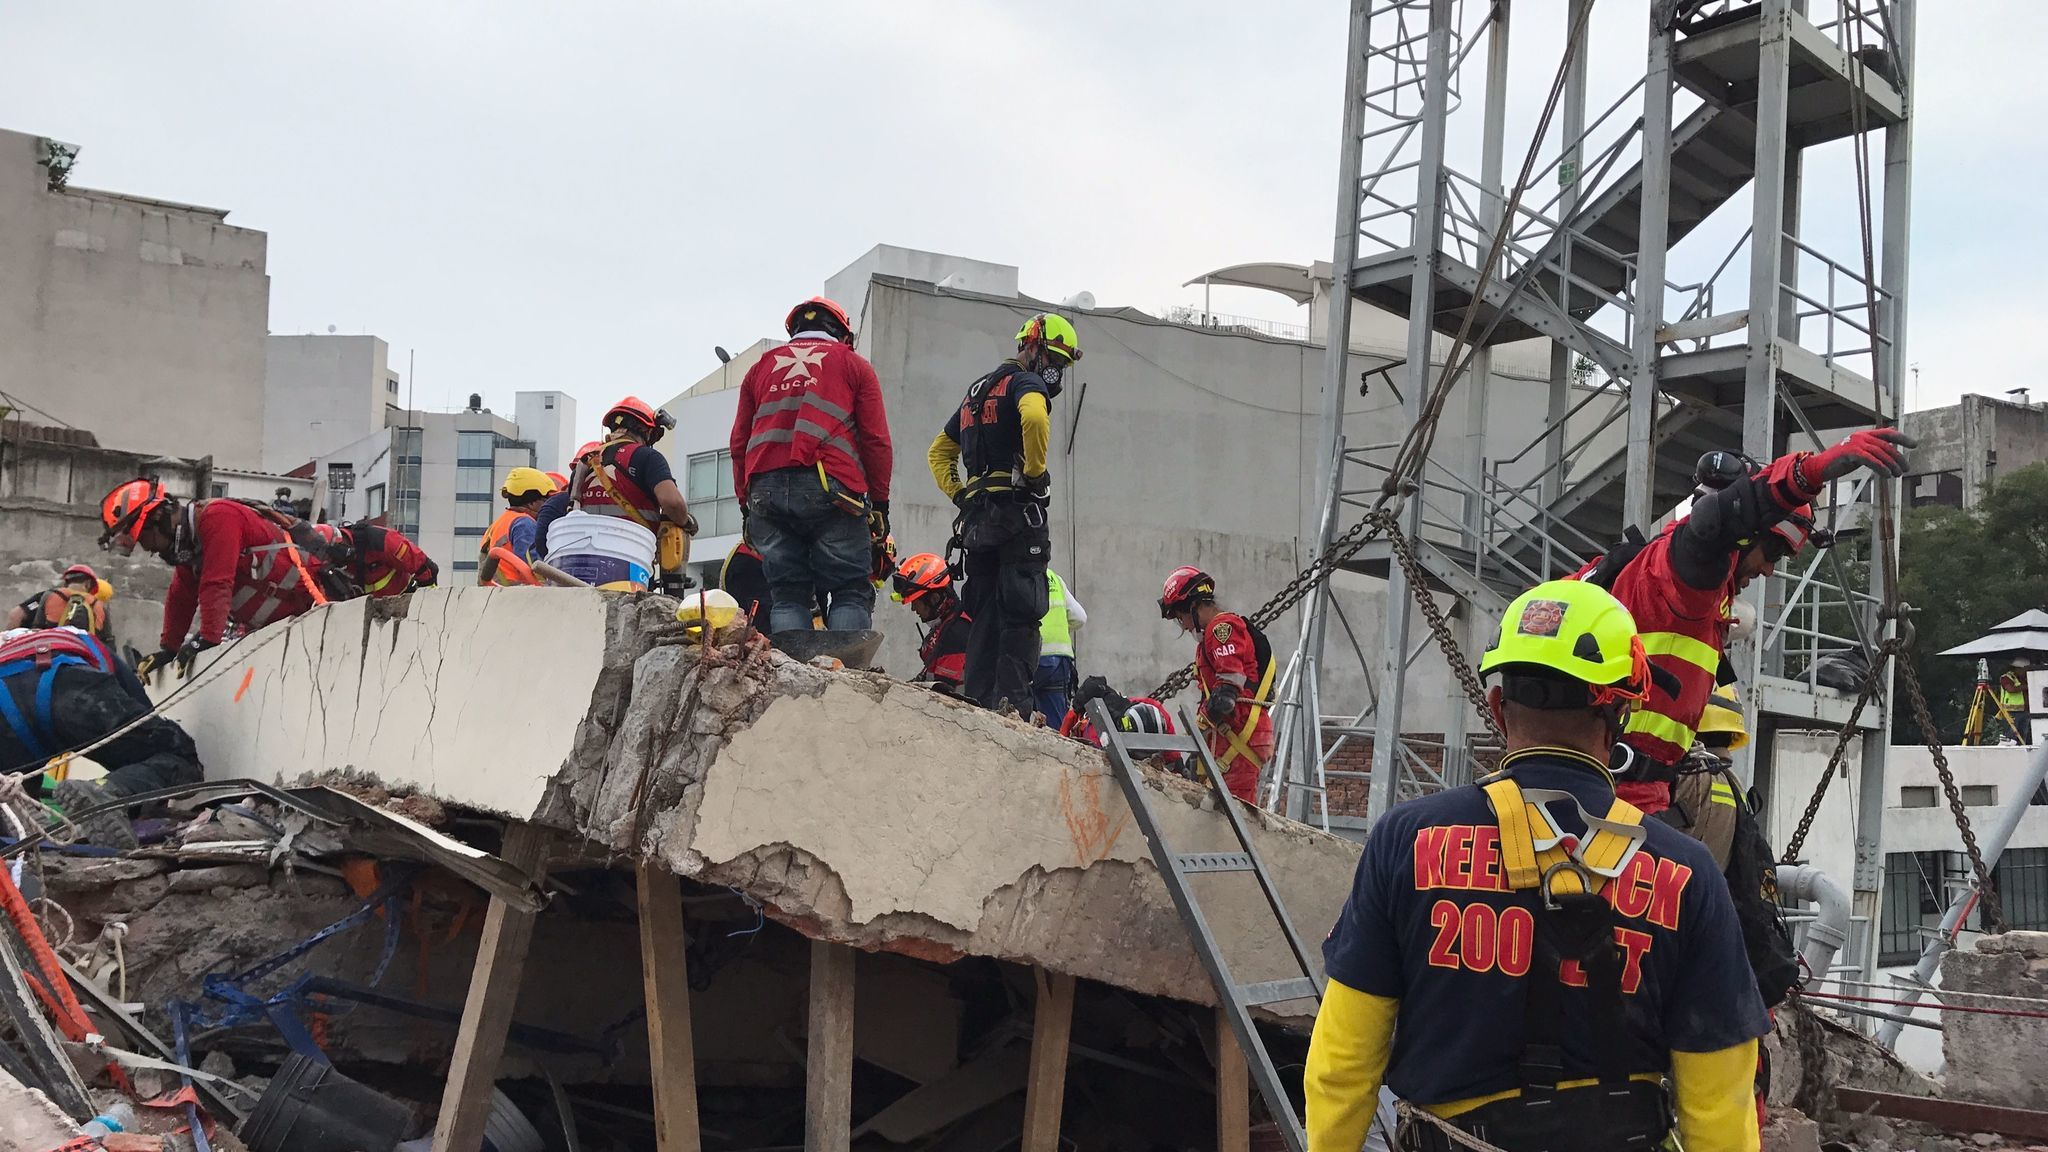 Some people  in the Mexico City seven-story office building at Avenida Alvaro Obregon 286 were able to survive if they managed to escape into the exterior steel stairwell before the building collapsed.